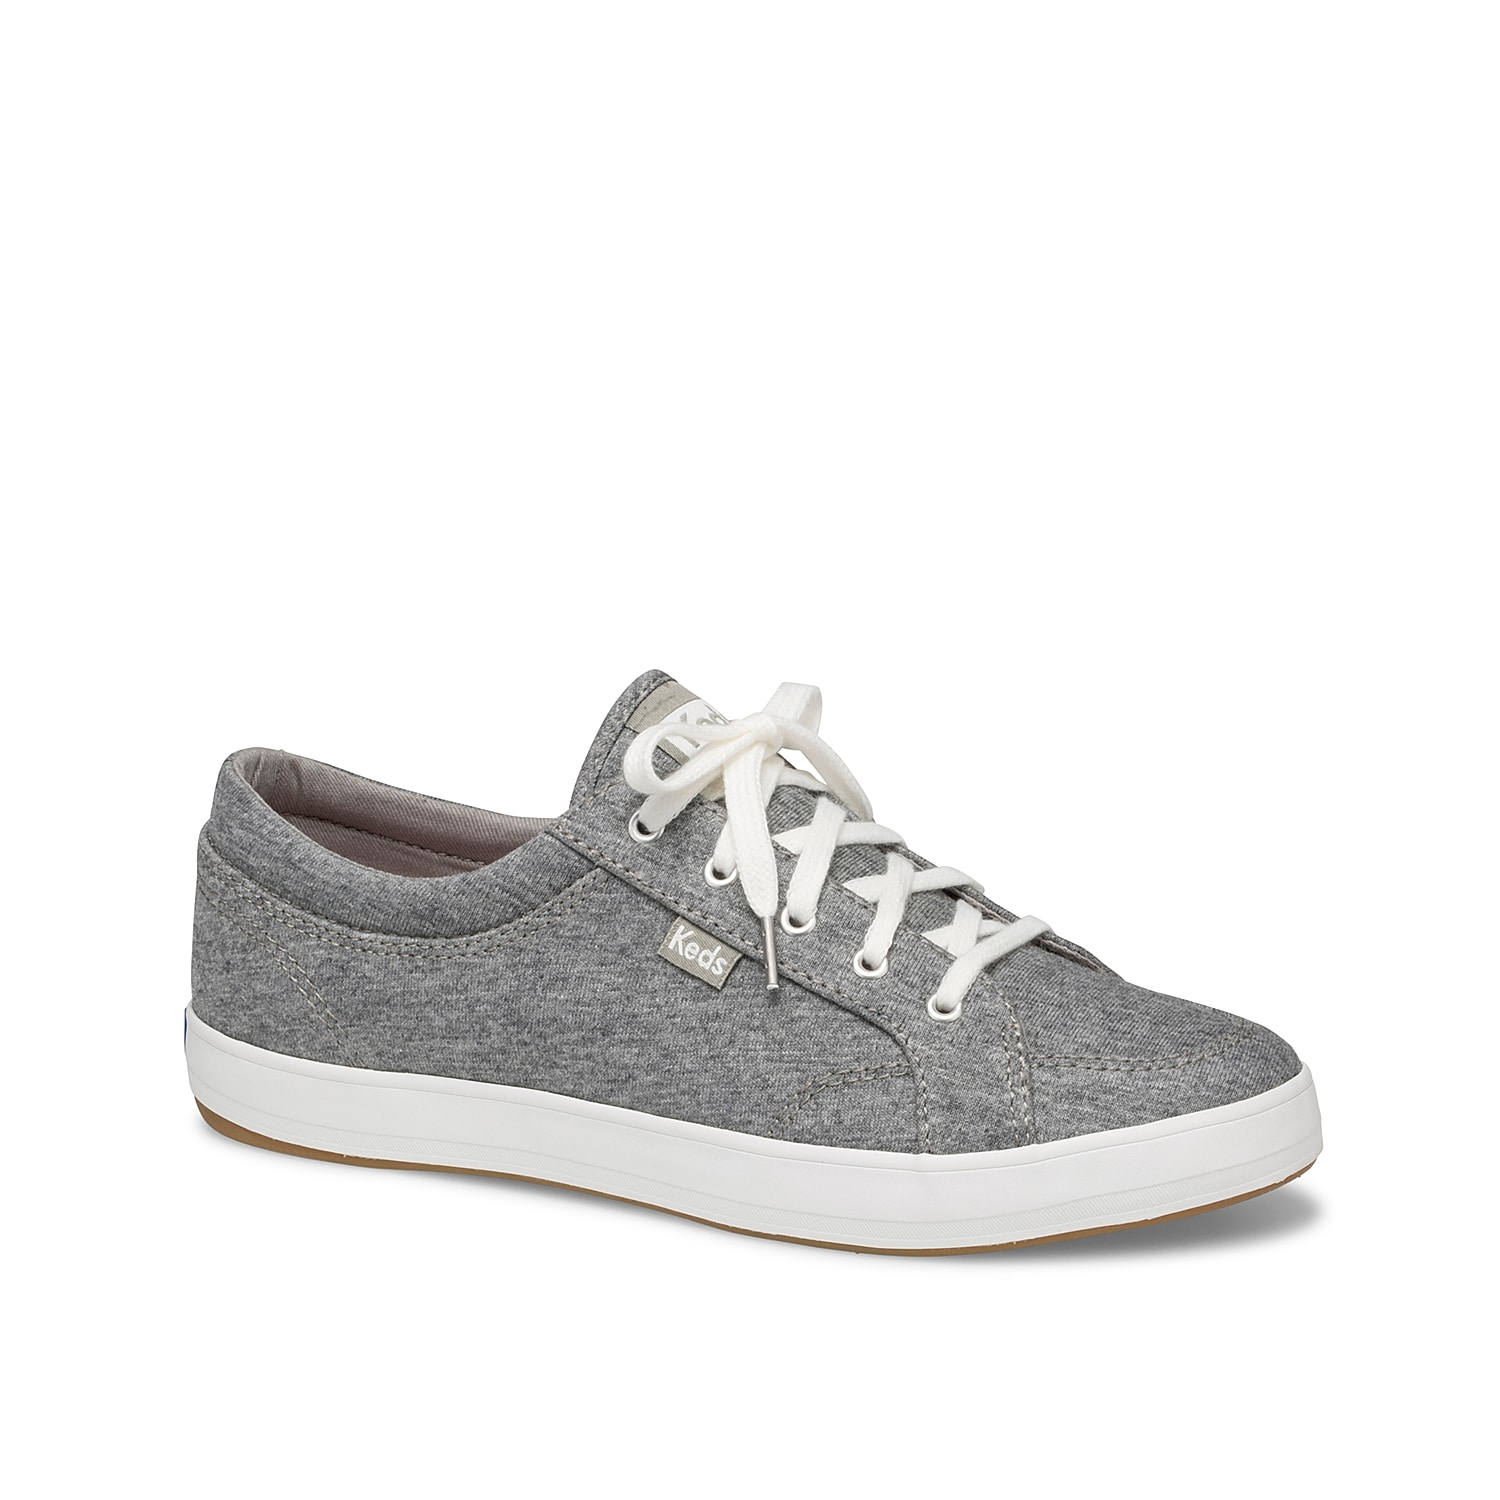 The women\\\'s Center sneakers from Keds is a classic style perfect for any day. These jersey low-tops feature a Dream Foam Memory™ cushioning for comfort in every step.